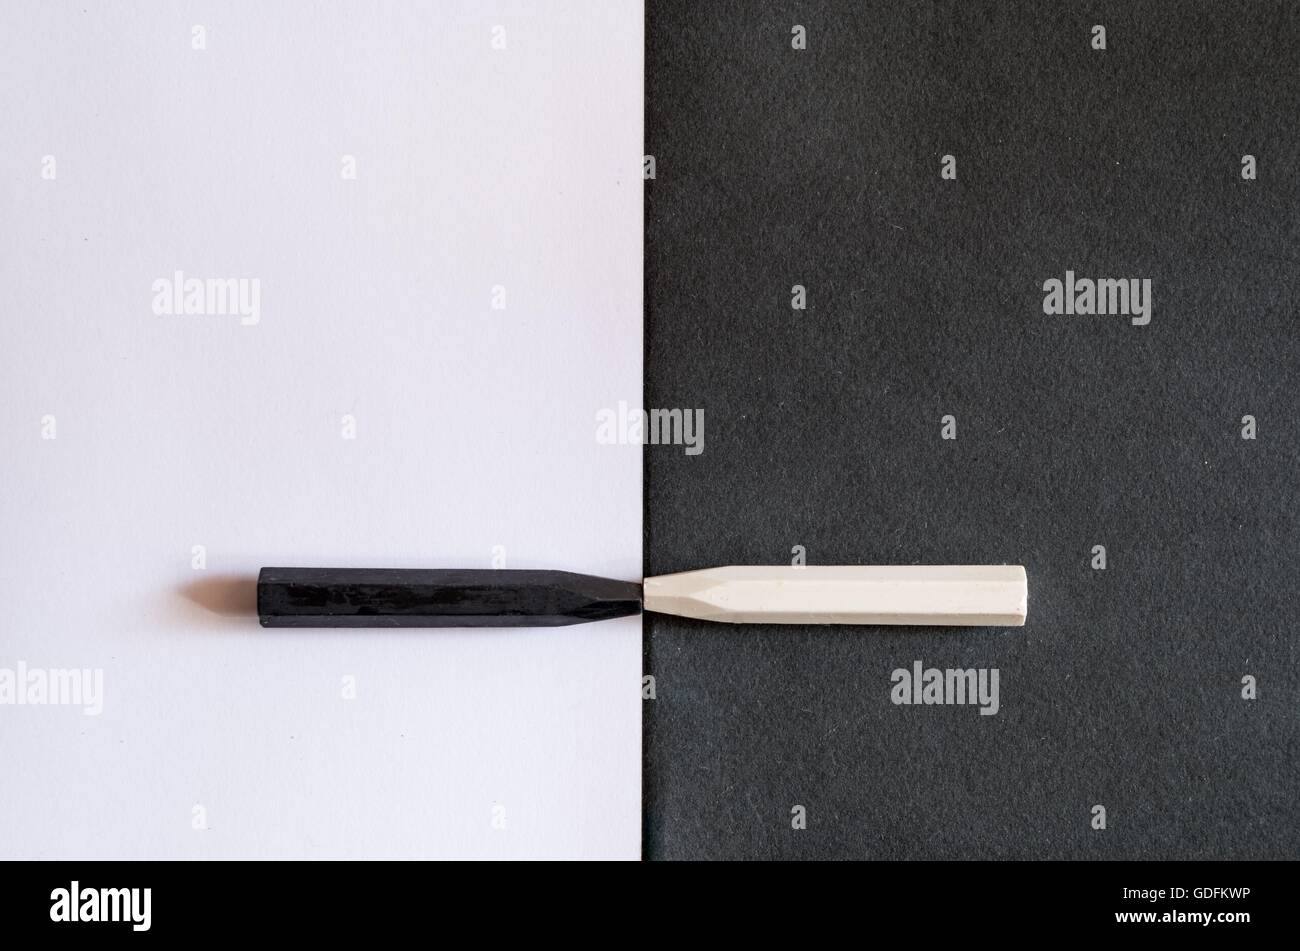 black and white crayons on alternate background of the same color, to symbolize the differences and similarities, - Stock Image